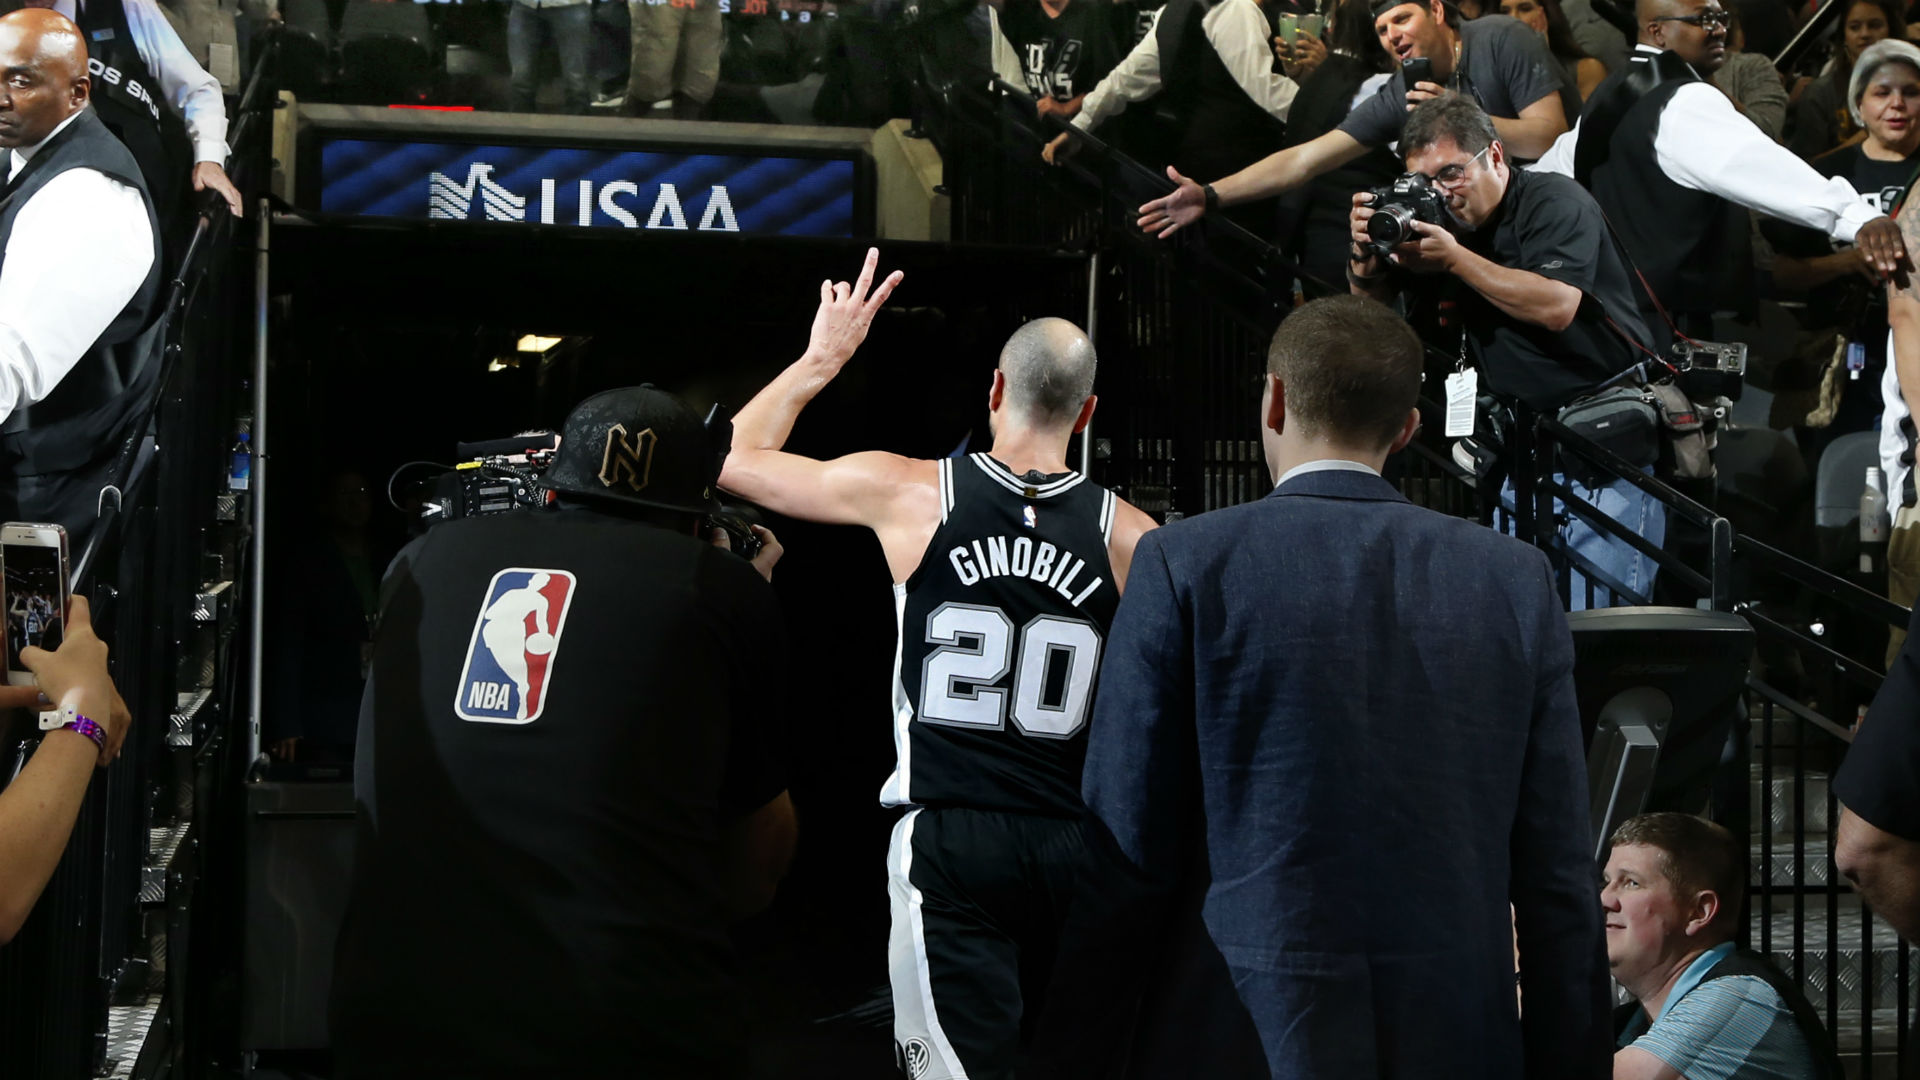 Manu Ginobili walks off the court after playing his final game in San Antonio